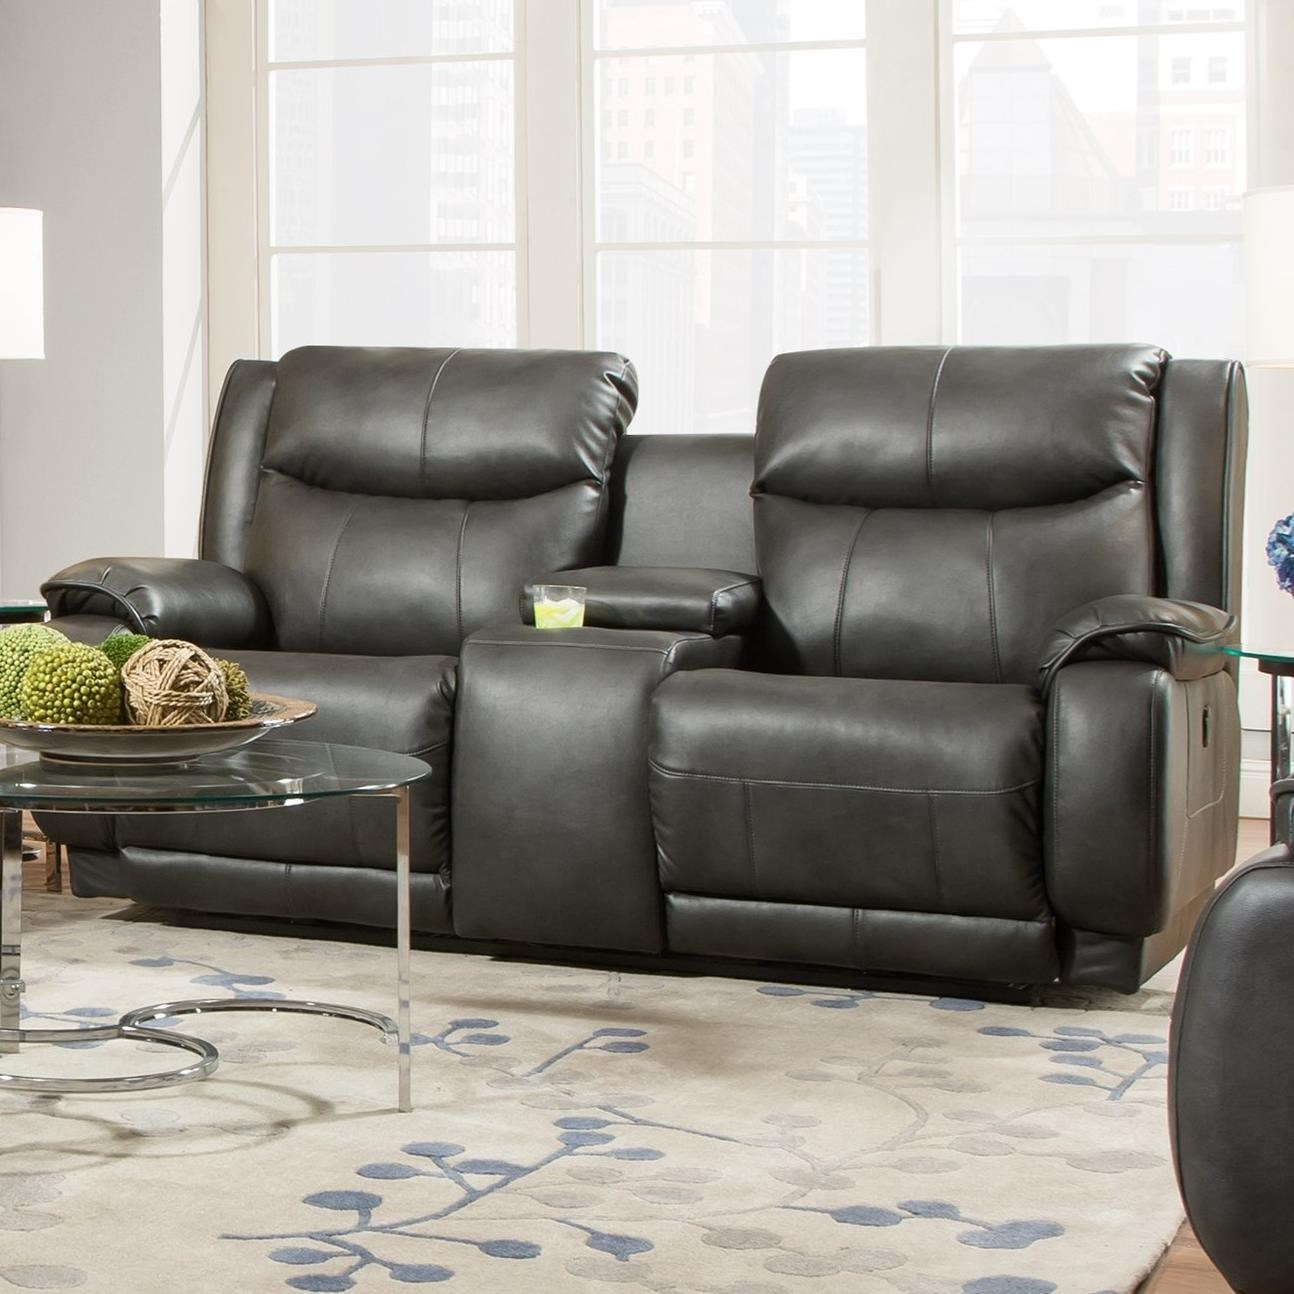 Velocity Power Plus Double Reclining Console Loveseat by Southern Motion at Lindy's Furniture Company